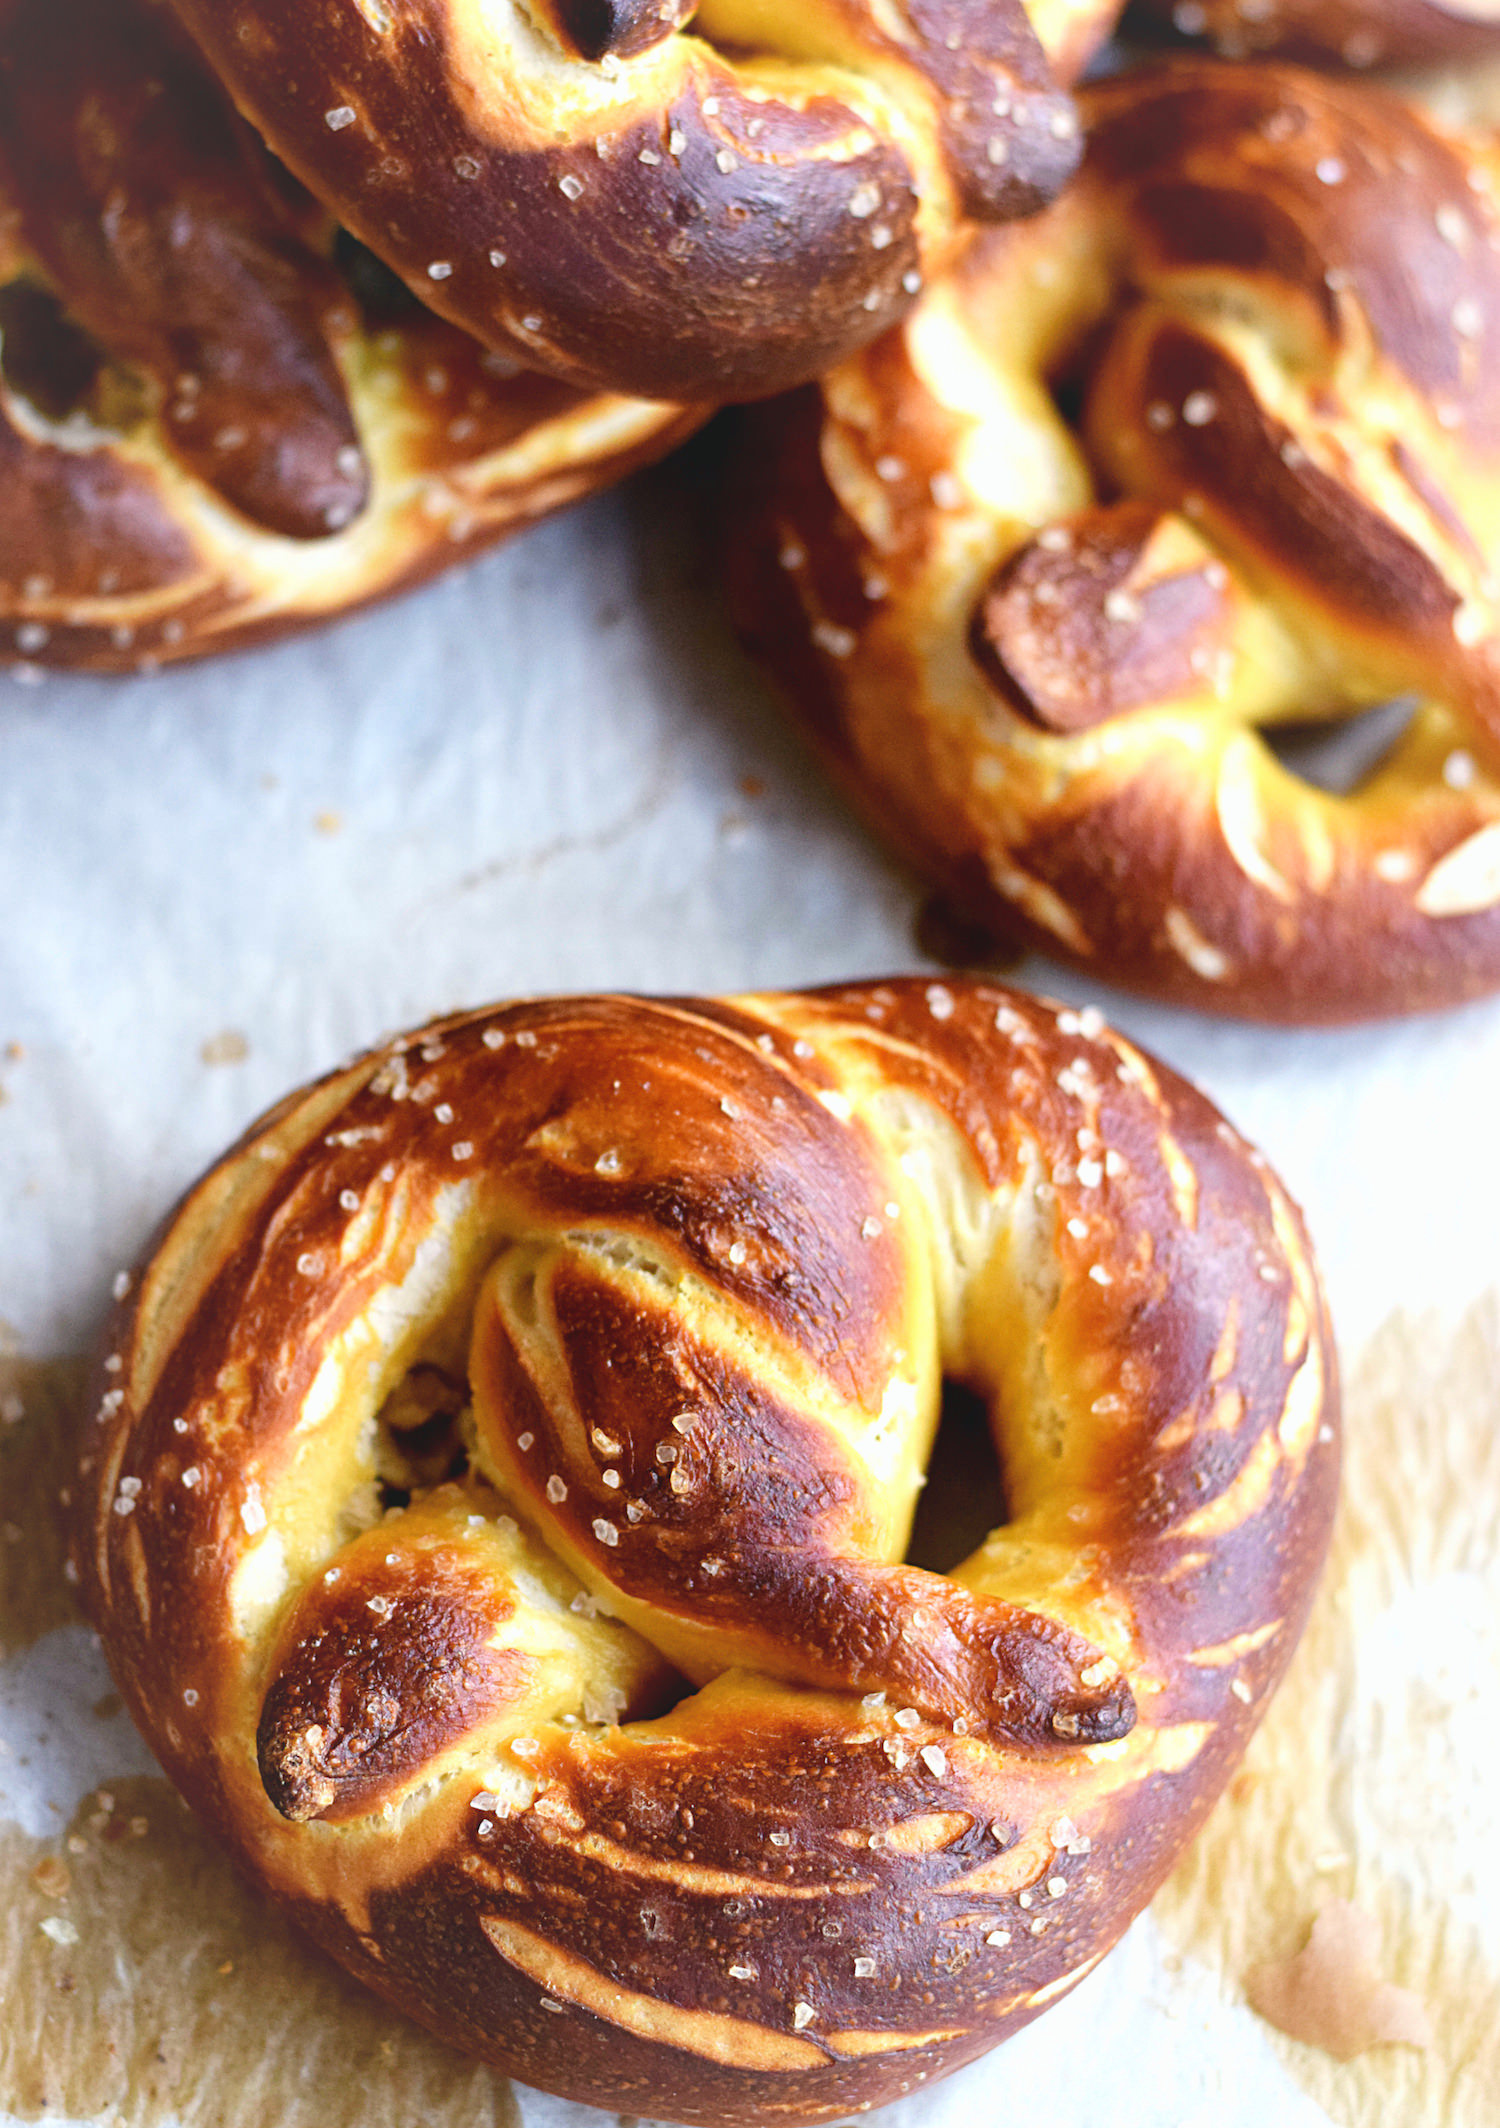 Buttery Soft Pretzels – these buttery, fluffy, soft pretzels are better than any mall or frozen versions out there. Must make! | trufflesandtrends.com